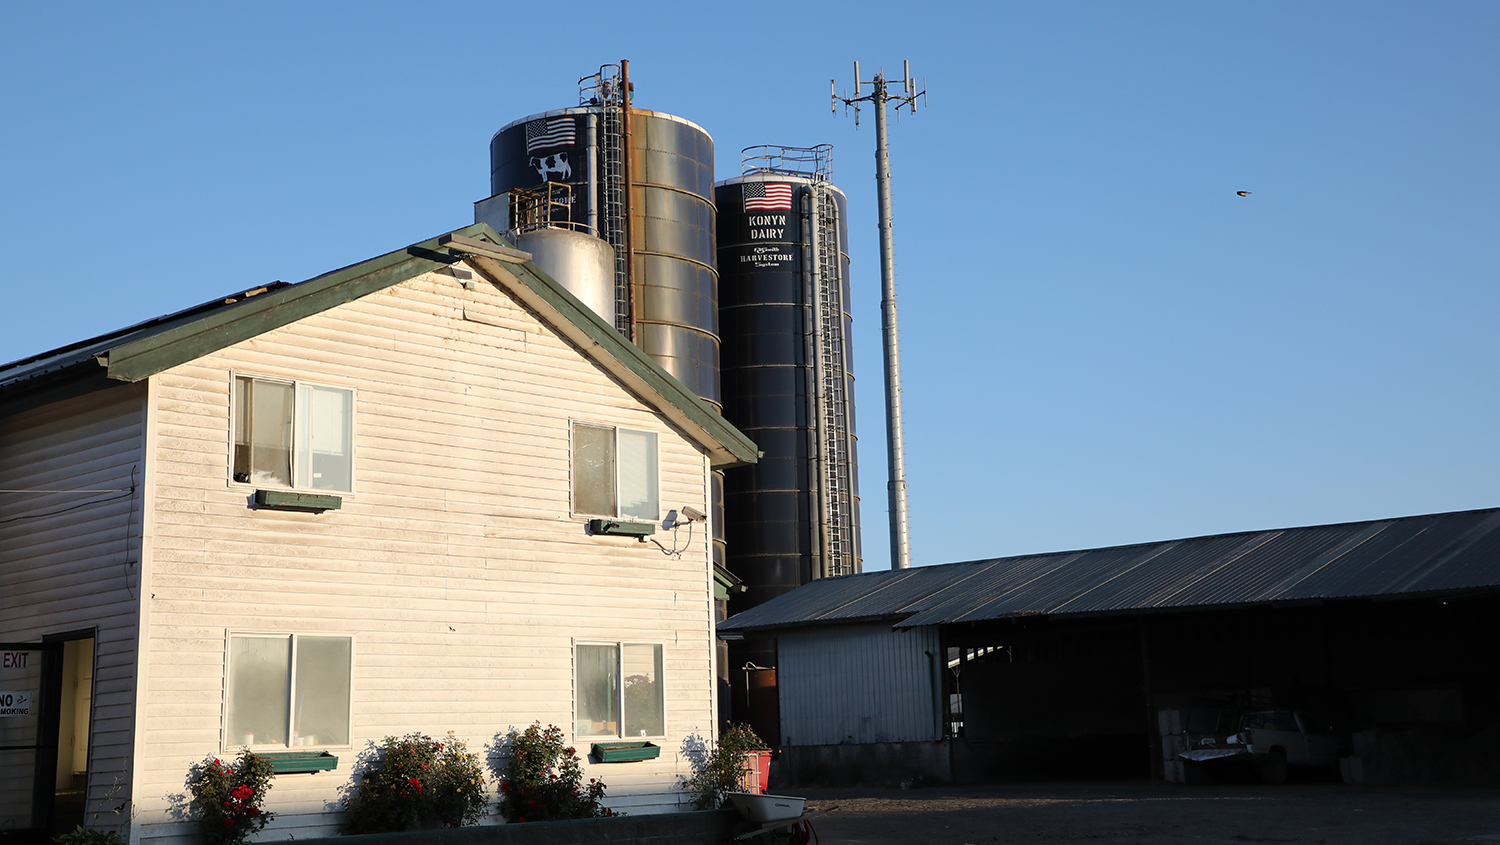 Photo of a farm house and silos at sunrise